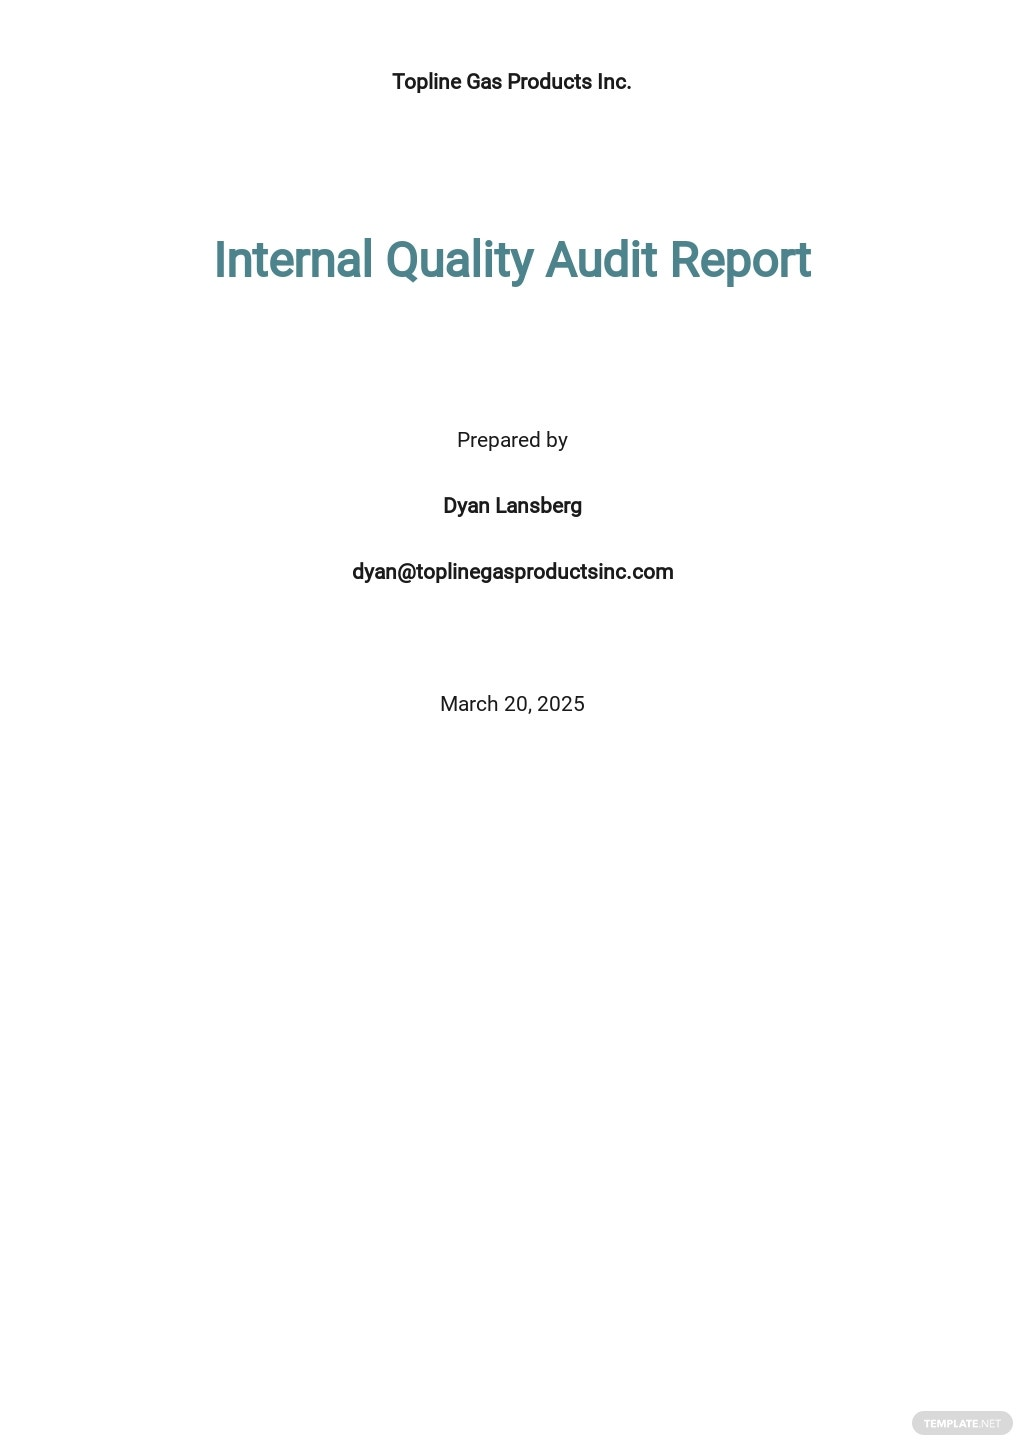 Internal Quality Audit Report Template.jpe